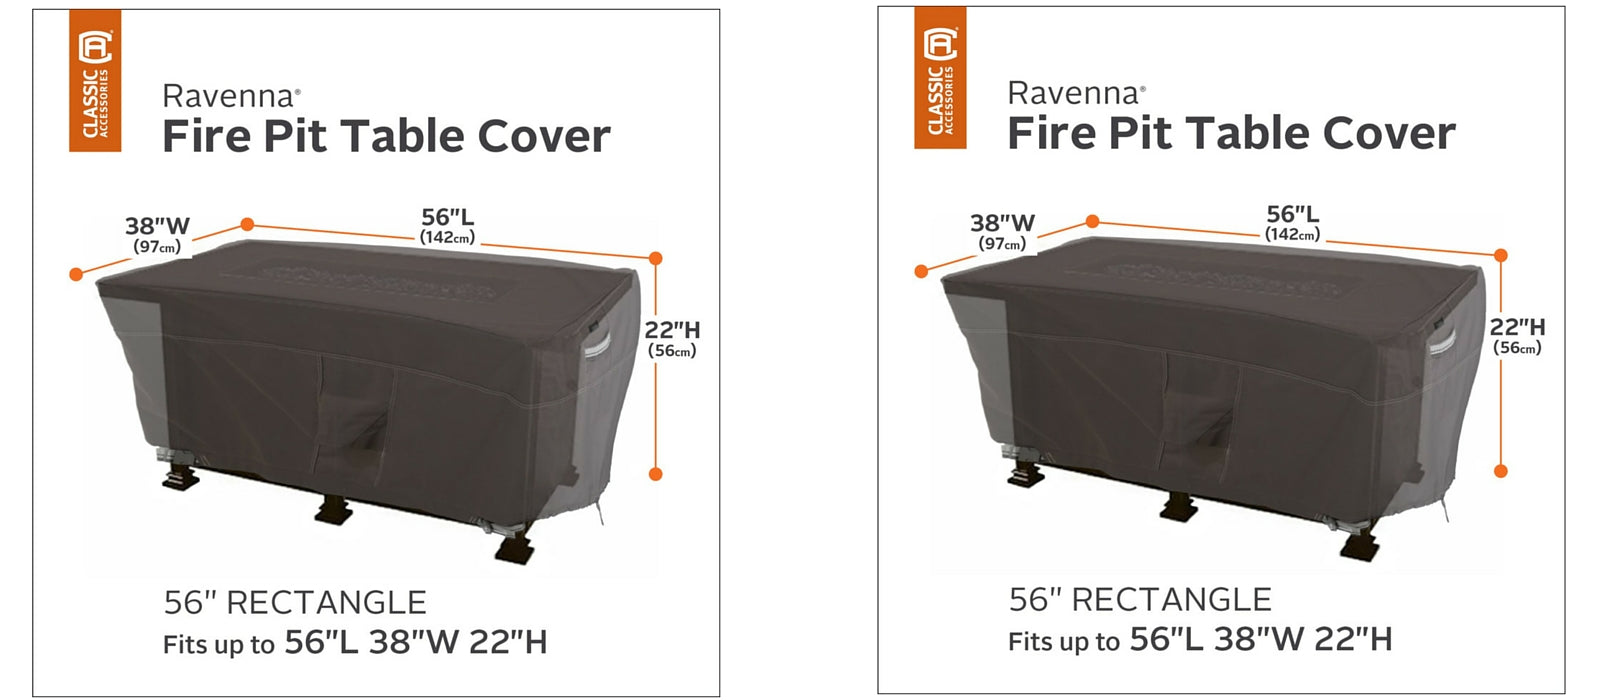 Premium Patio Heater Cover - Test Image 1